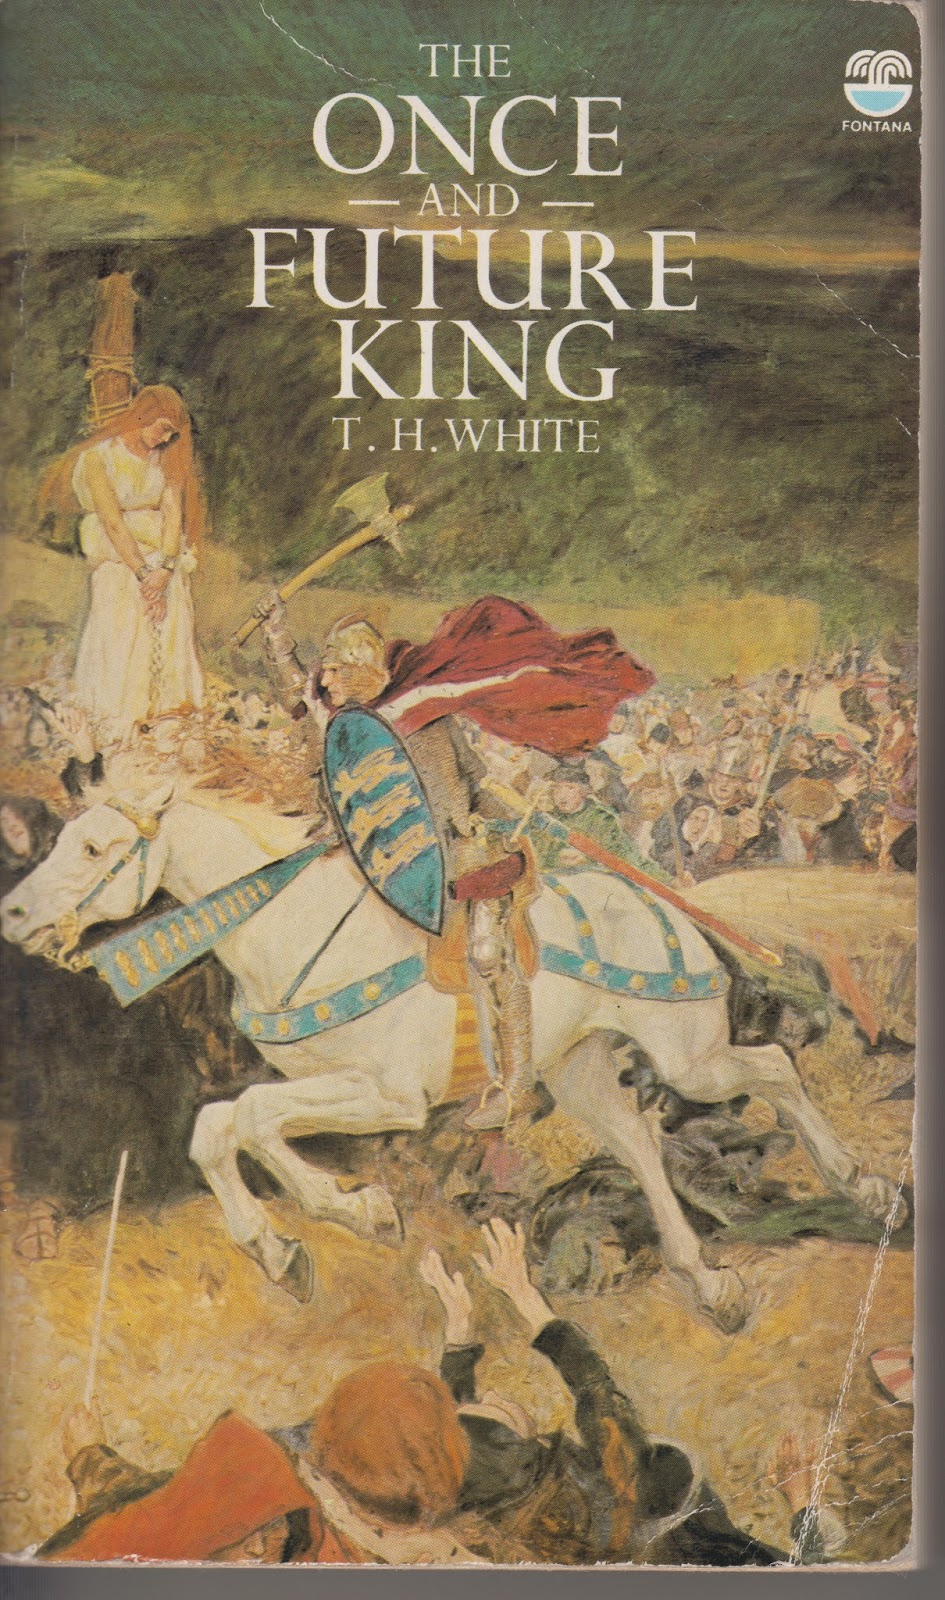 an examination of the book the once and future king by t h white Th white's 'once and future king'  while studying at cambridge, white  returned to morte d' arthur, writing an essay on the  by 1941, he had finished  the final volume, the book of merlyn, turning in the manuscript for the.